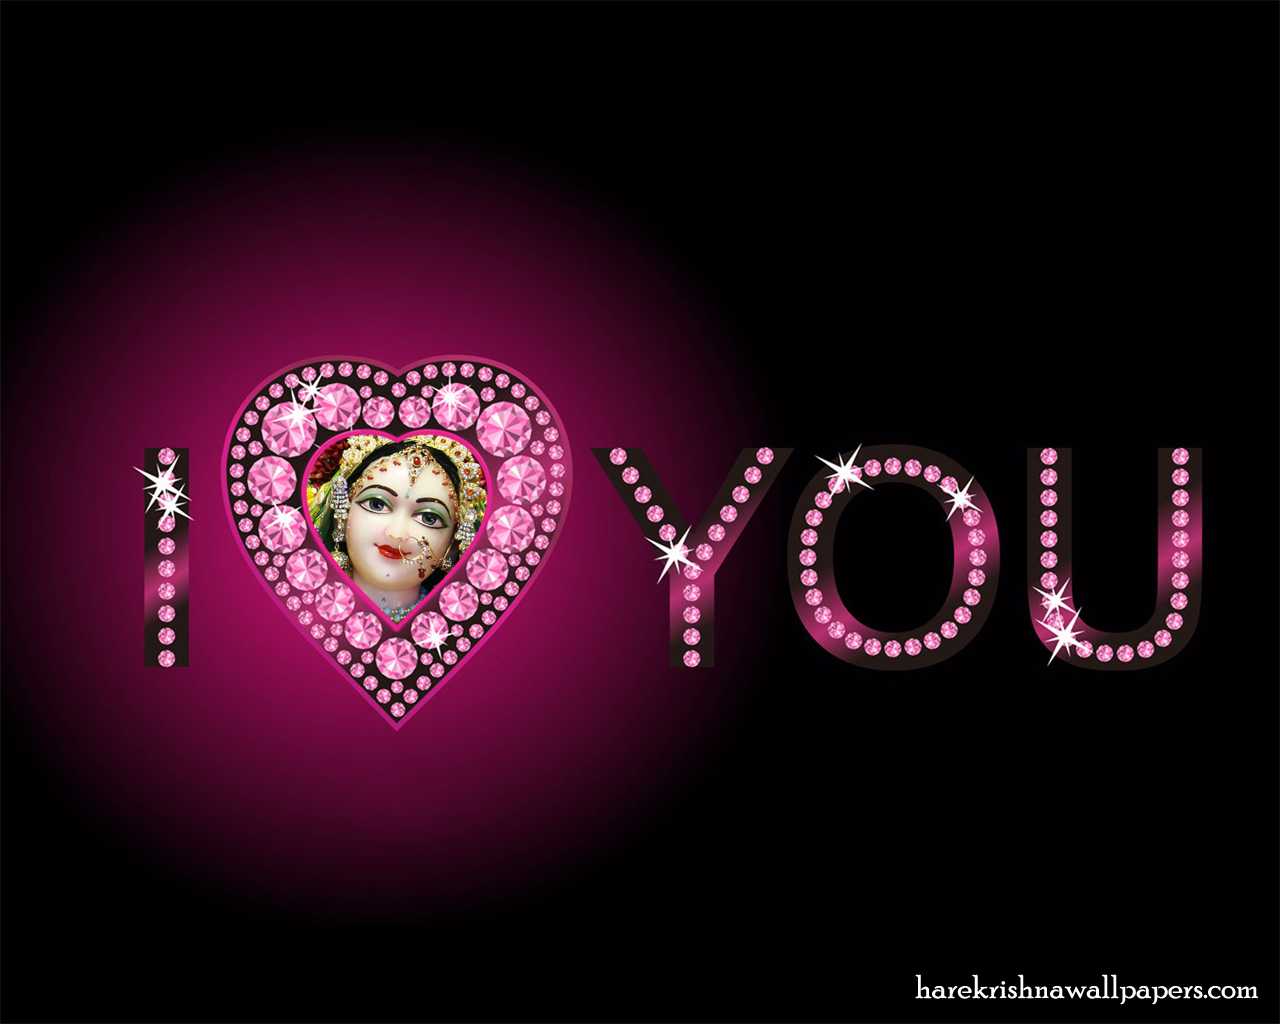 I Love You Radharani Wallpaper (015) Size 1280x1024 Download